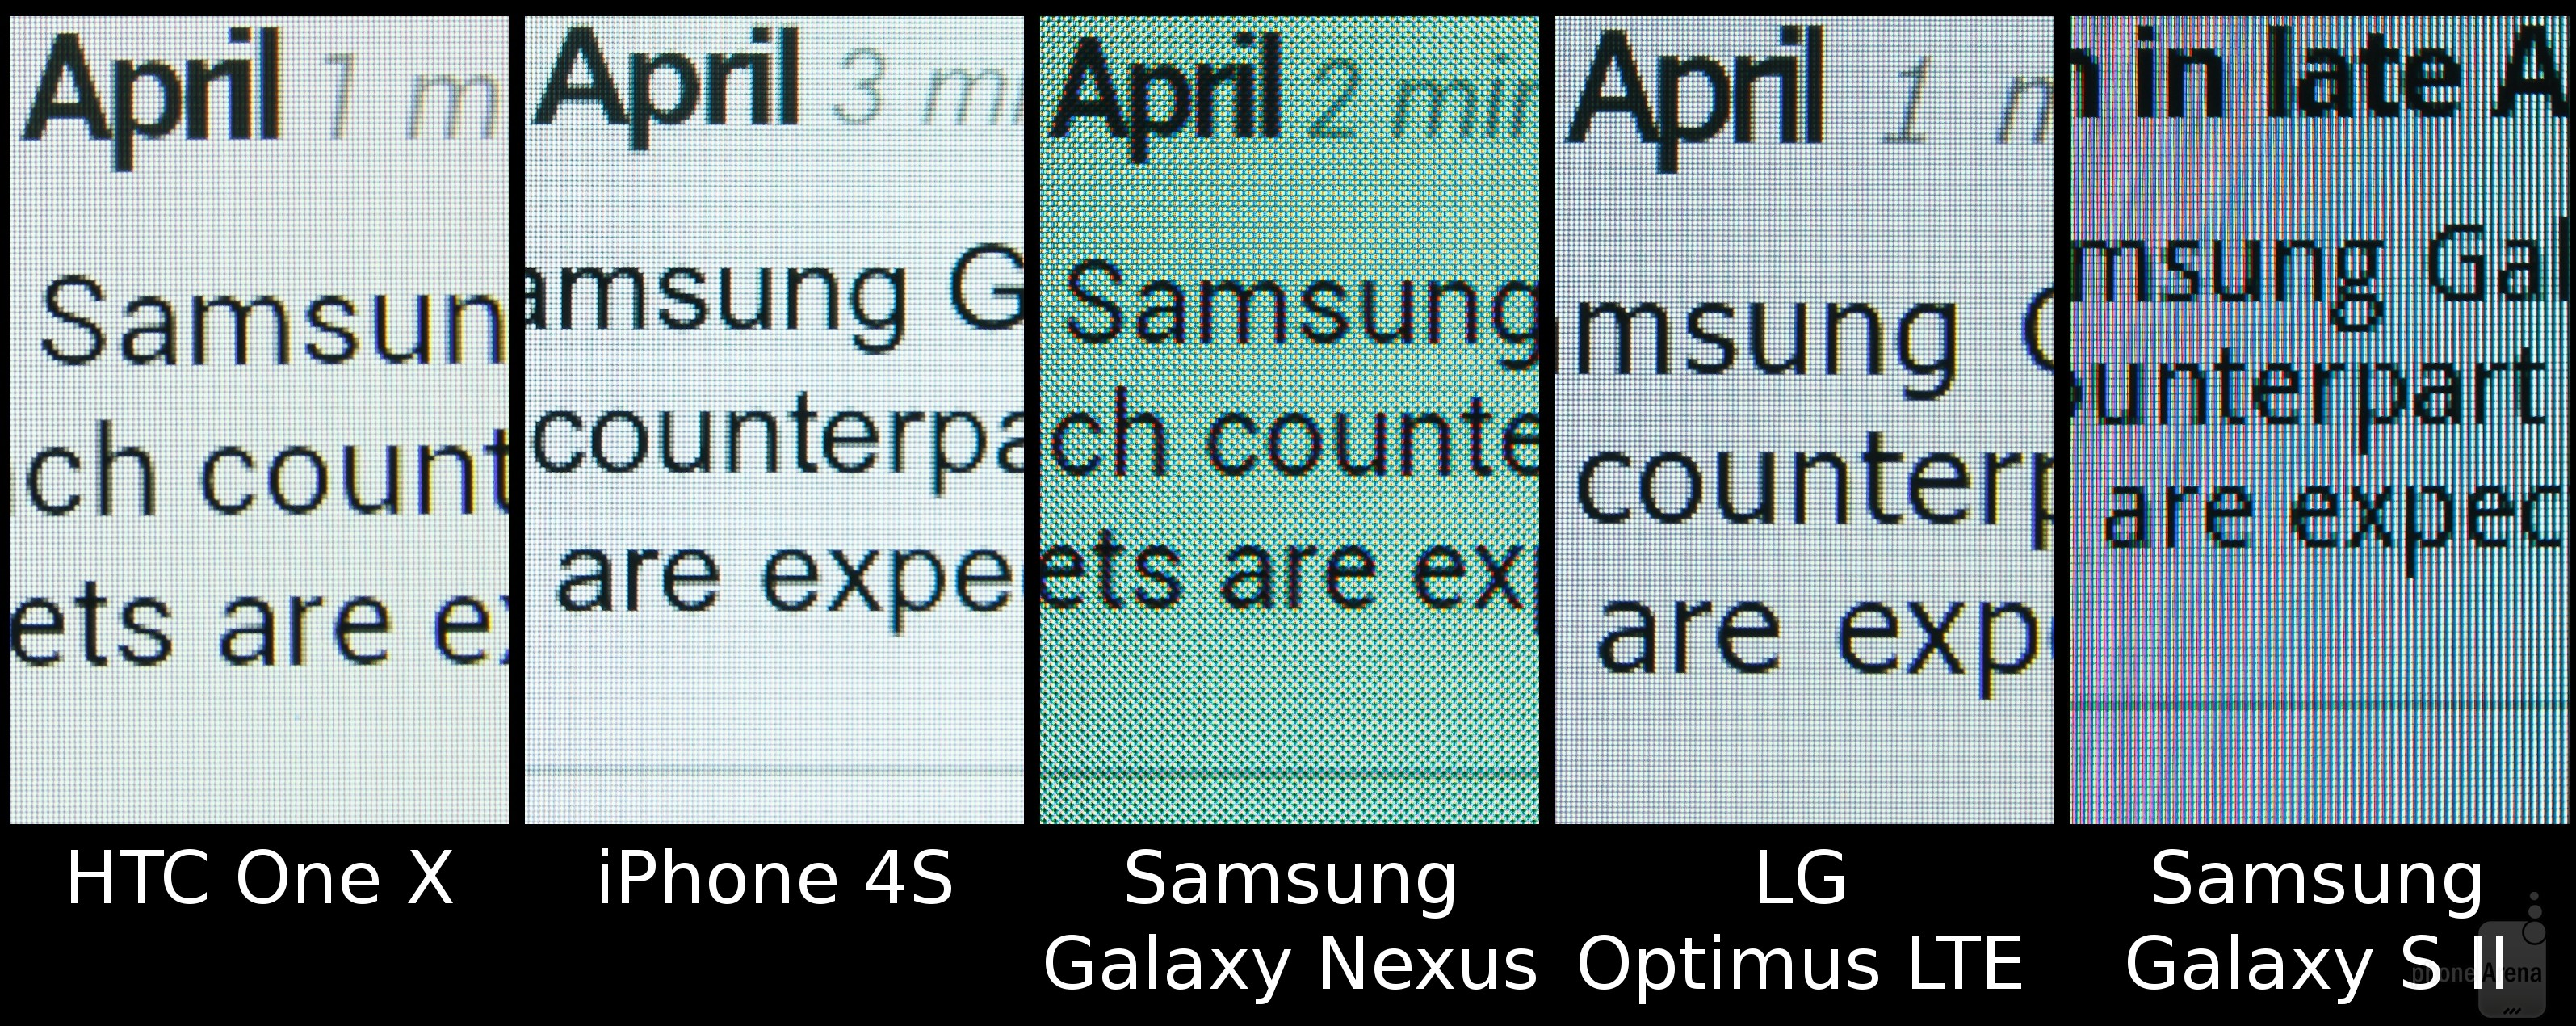 image-comparison-3-centered-text